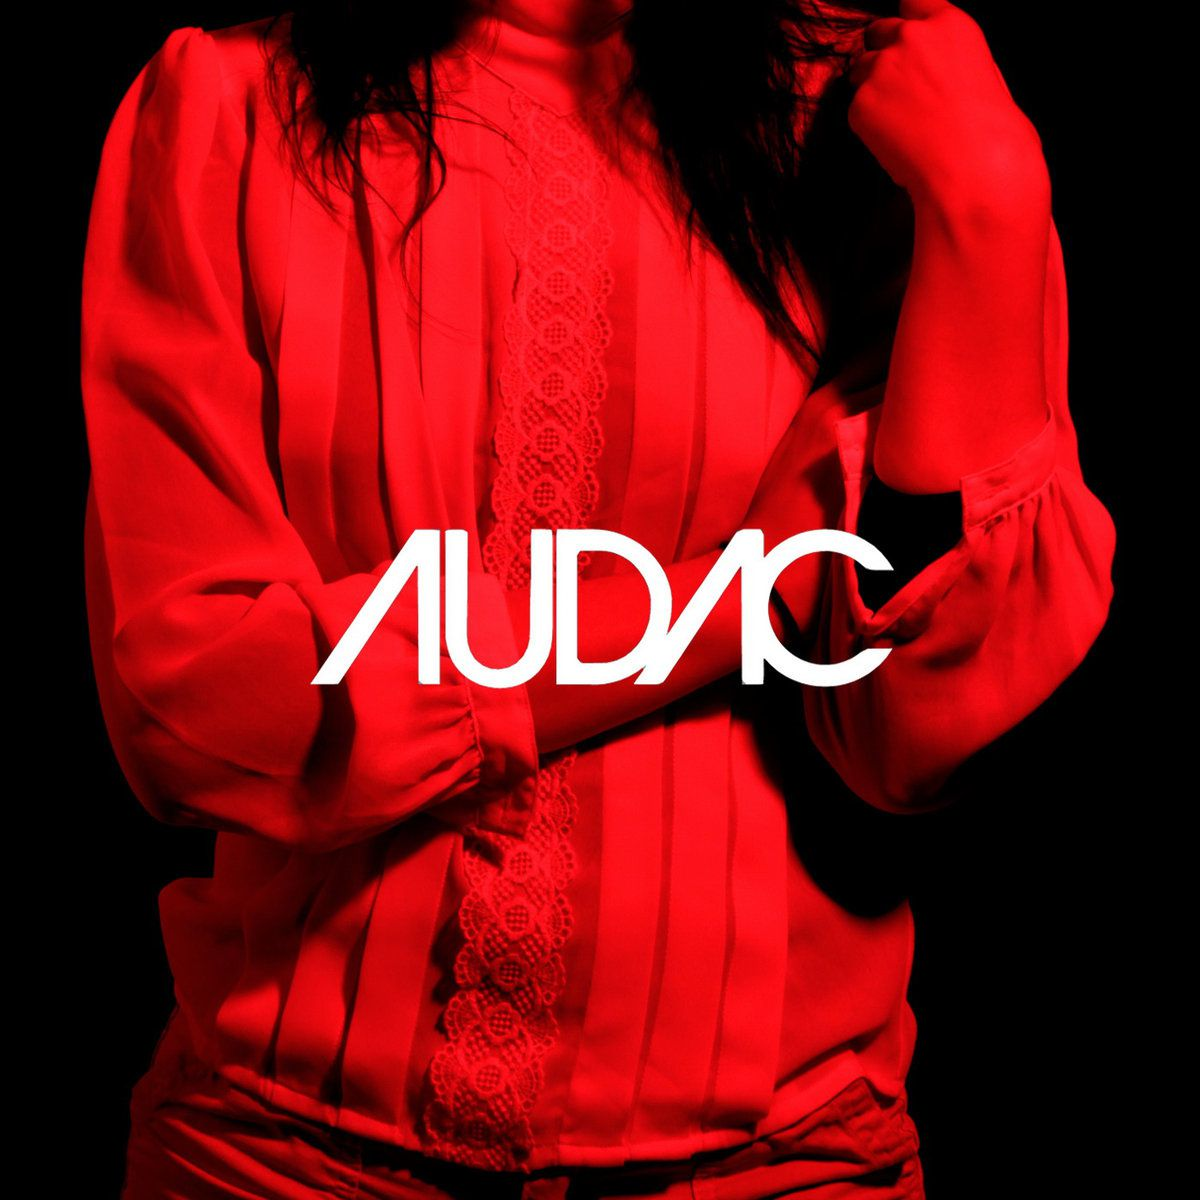 Audac Limited Edition ...